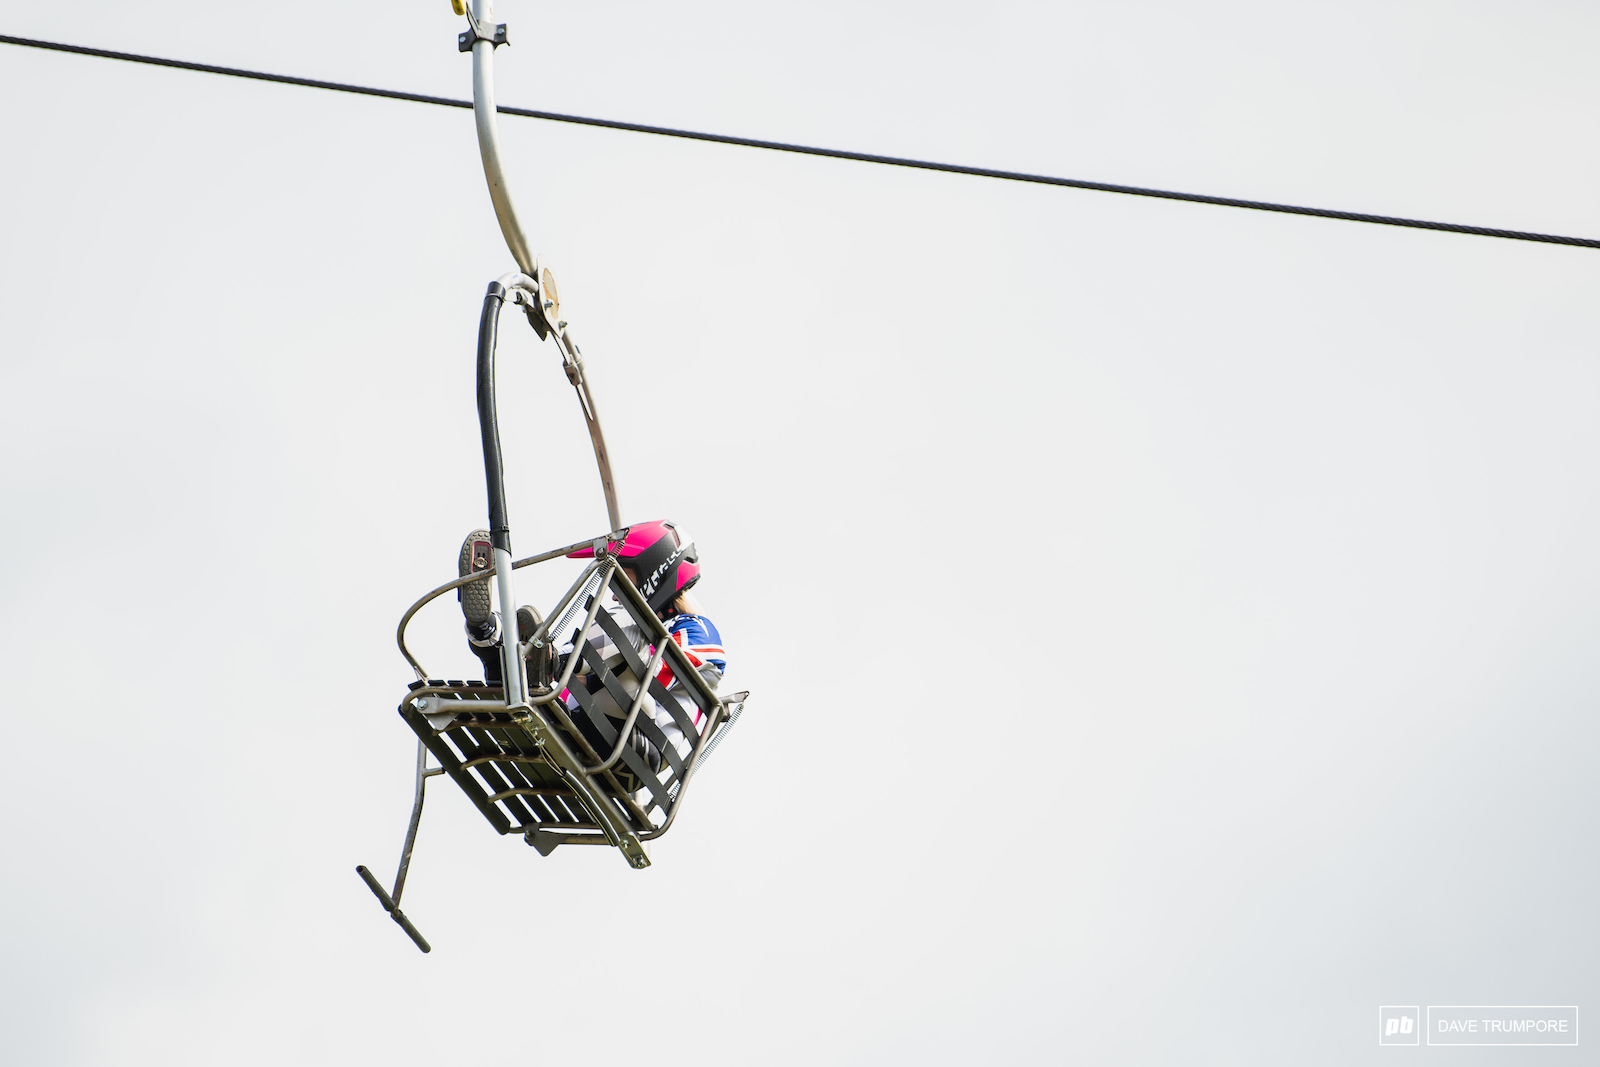 Tracey Hannah napping on the slowest chairlift in France